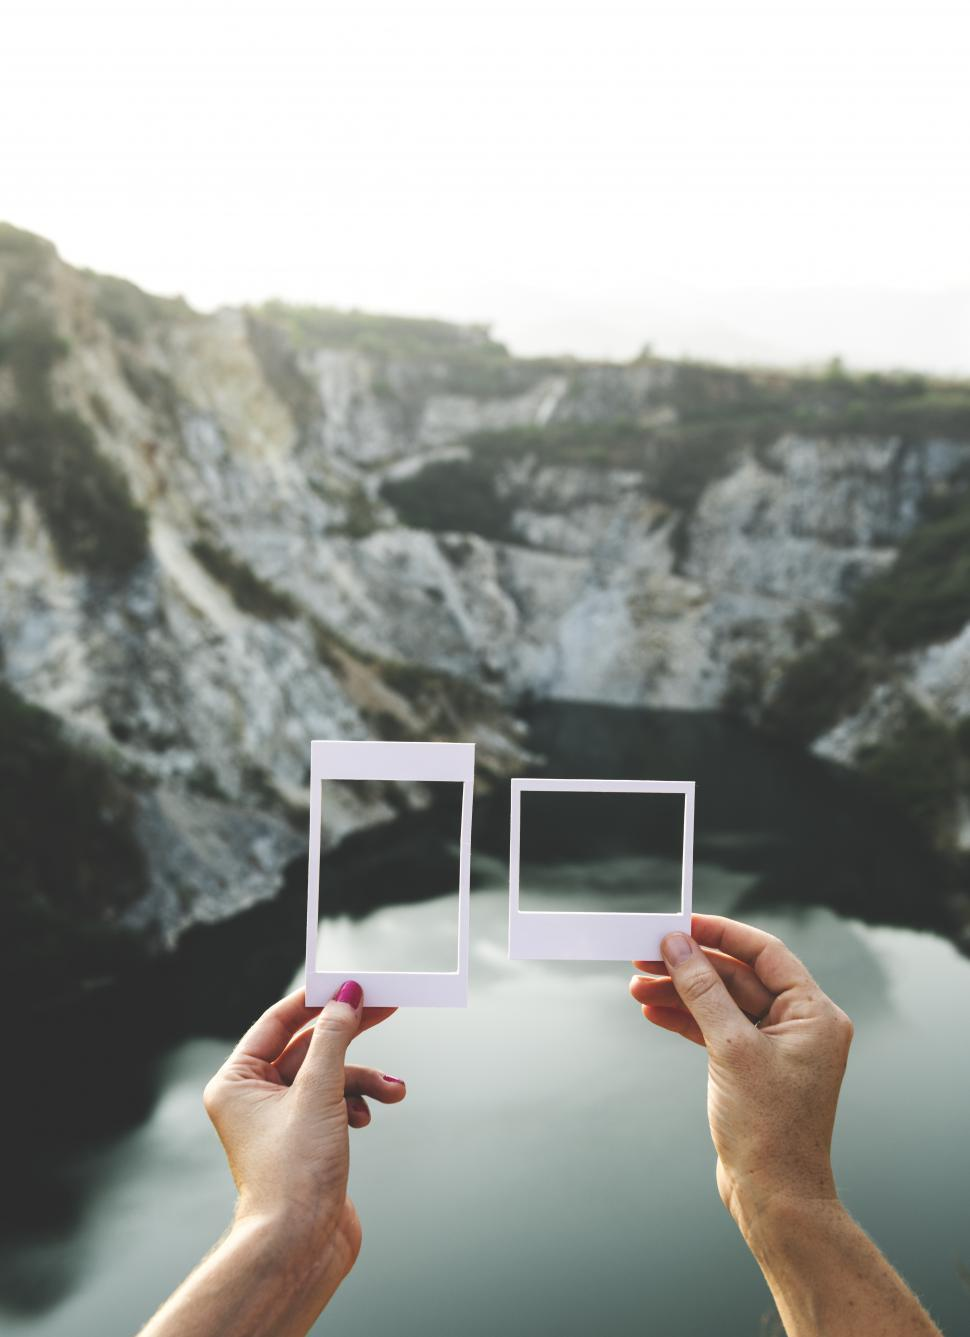 Download Free Stock Photo of Hands holding a photo frame shaped paper cut out templates in front of mountains